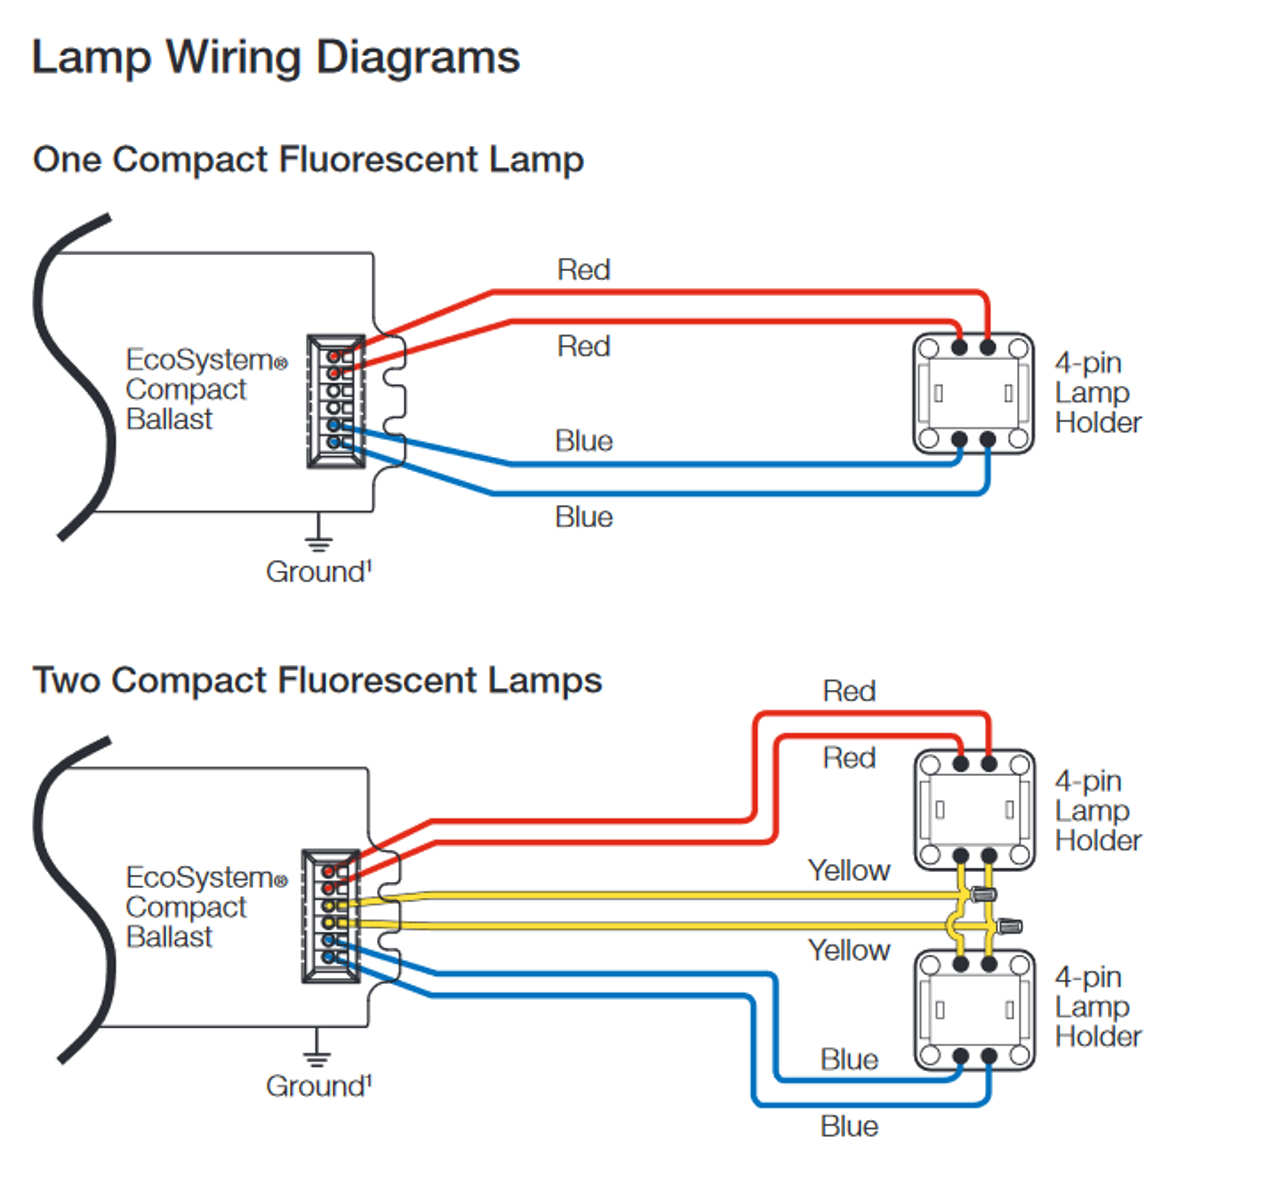 Pin Ballast Wiring Diagram on 110cc wire harness diagram, and 4 pin input diagram, 4 pin socket diagram, 4 pin fuse, vga pinout diagram, 4 pin wiring chart, 4 pin cable, 4 pin plug, 4 pin trailer harness, 4 pin trailer diagram, 4 pin wire harness, 4 pin switch, 4 pin sensor diagram, 4 pin fan diagram, s-video pin diagram, 4 pin round trailer wiring, 4 pin connector, 4 pin harness diagram, 4 pin relay, 4 pin voltage,